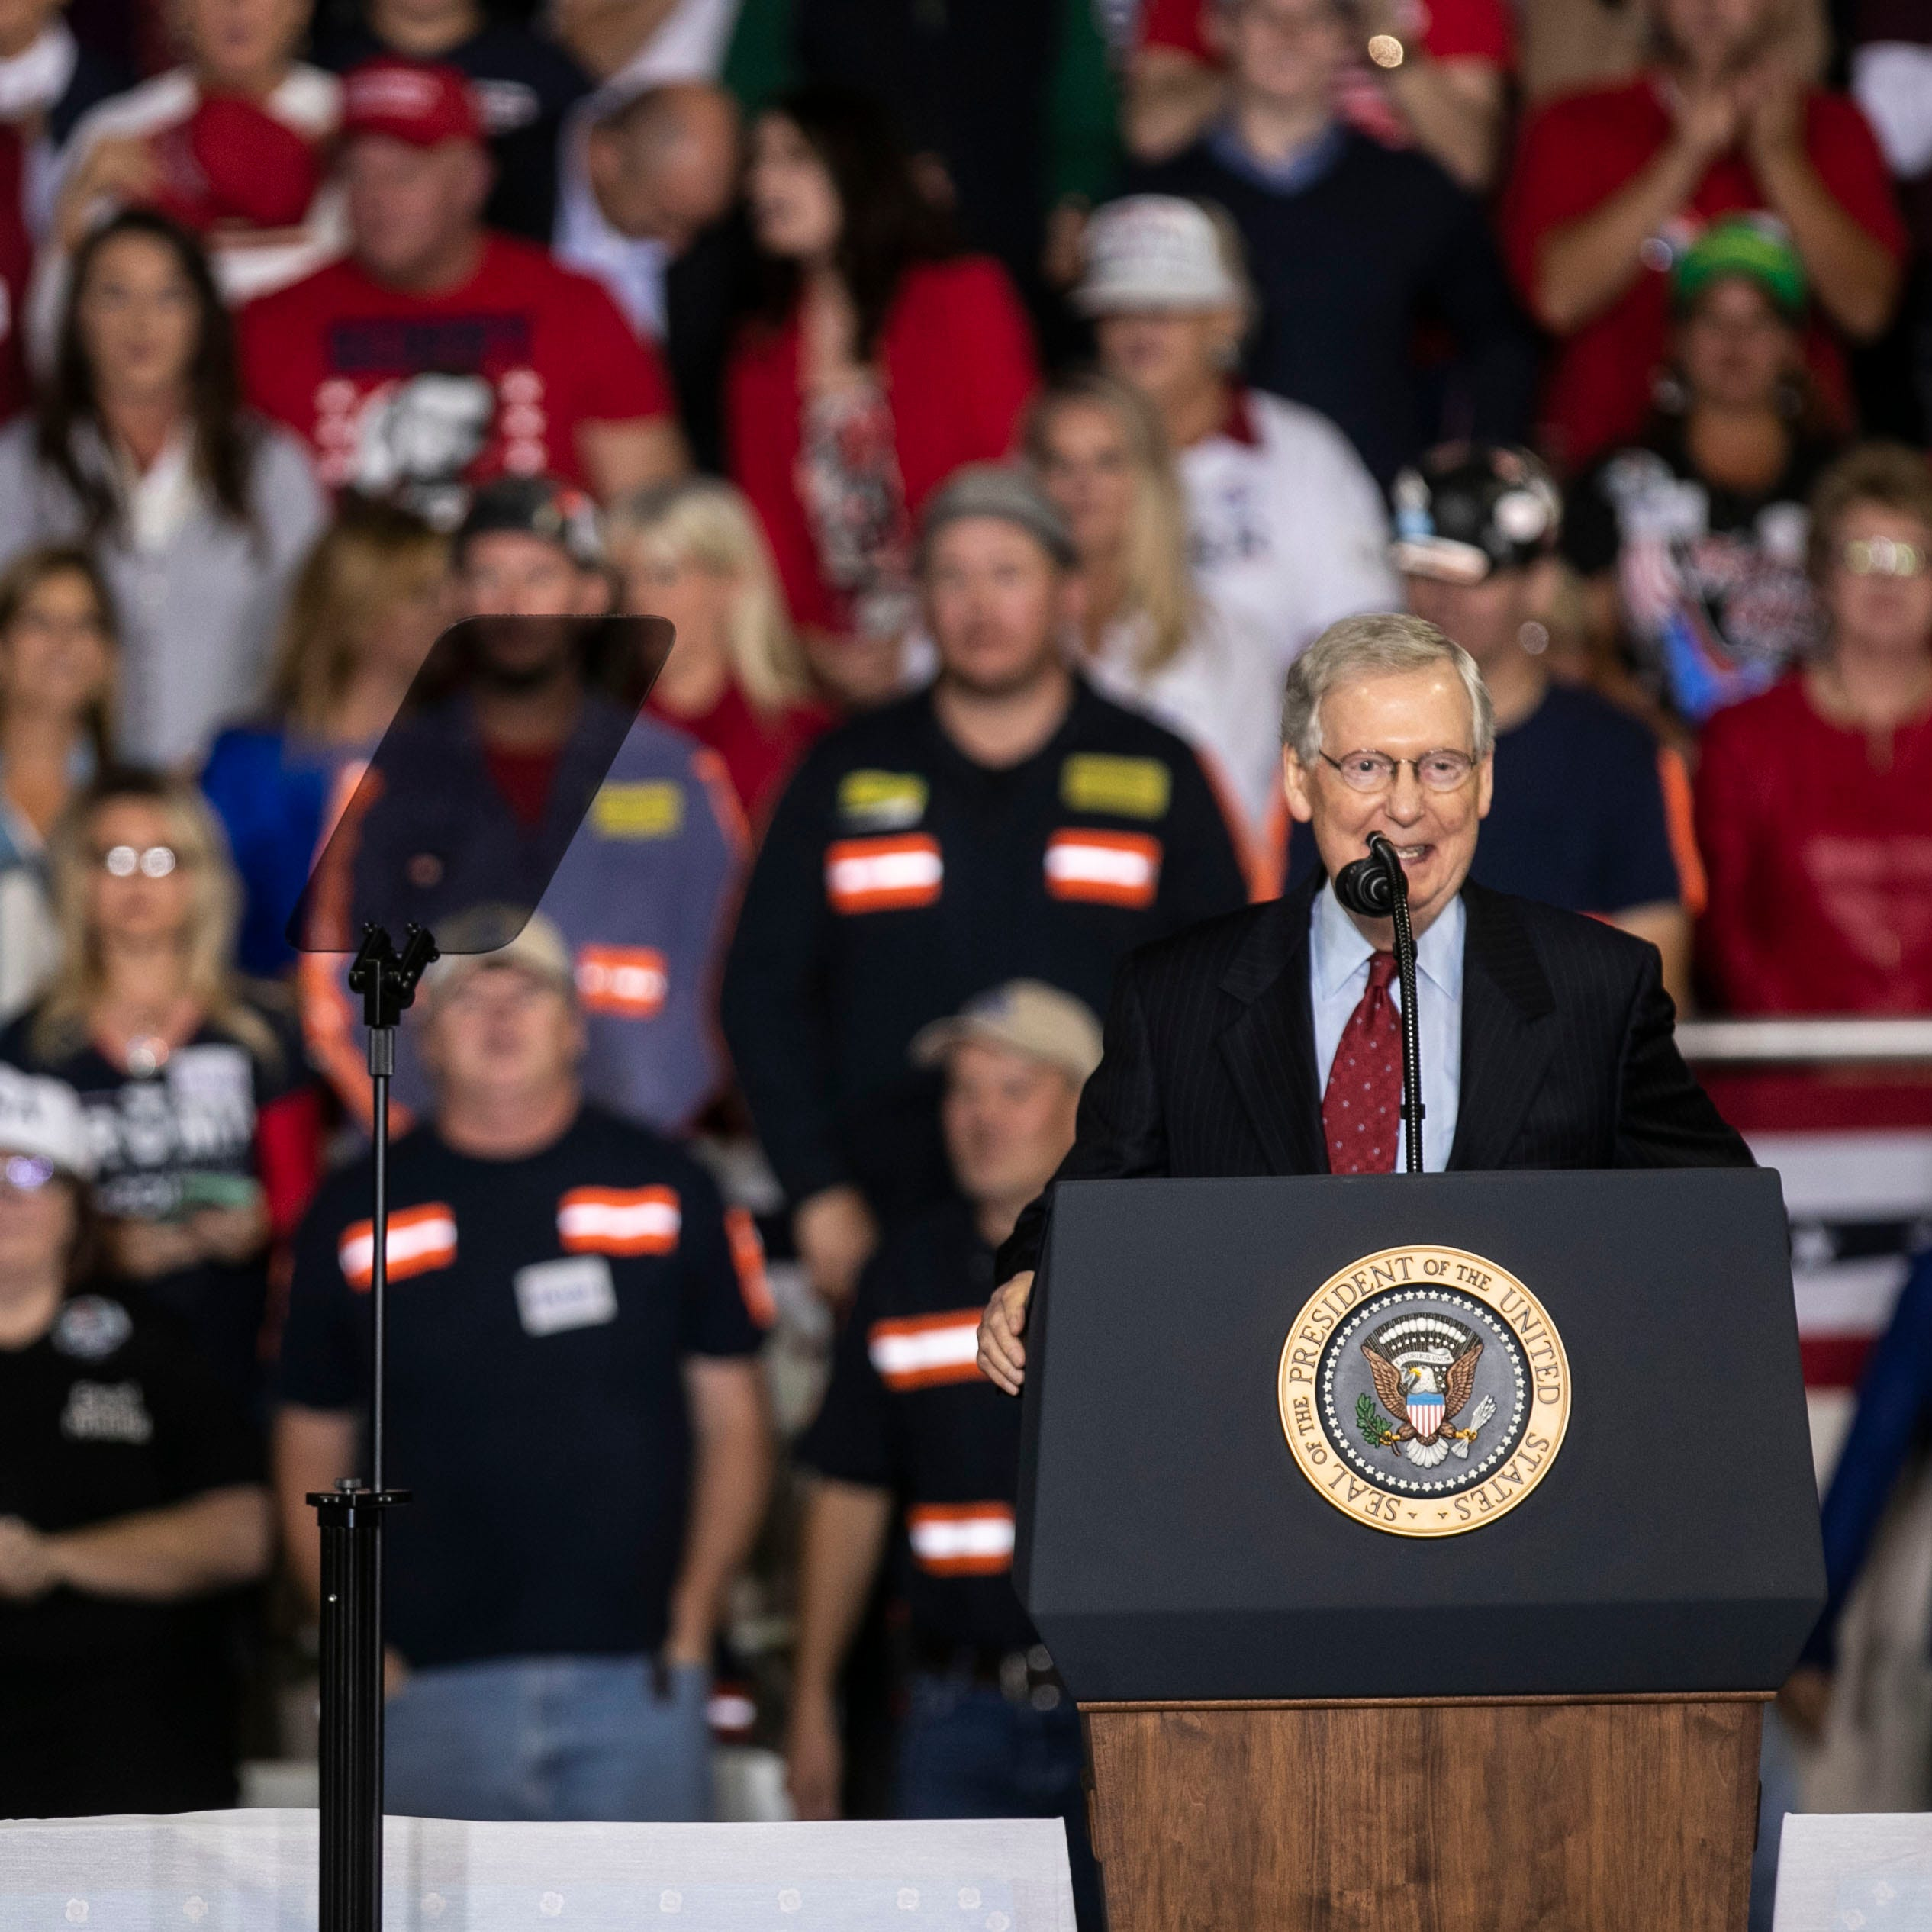 Report: Mitch McConnell tells Trump prison reform vote unlikely